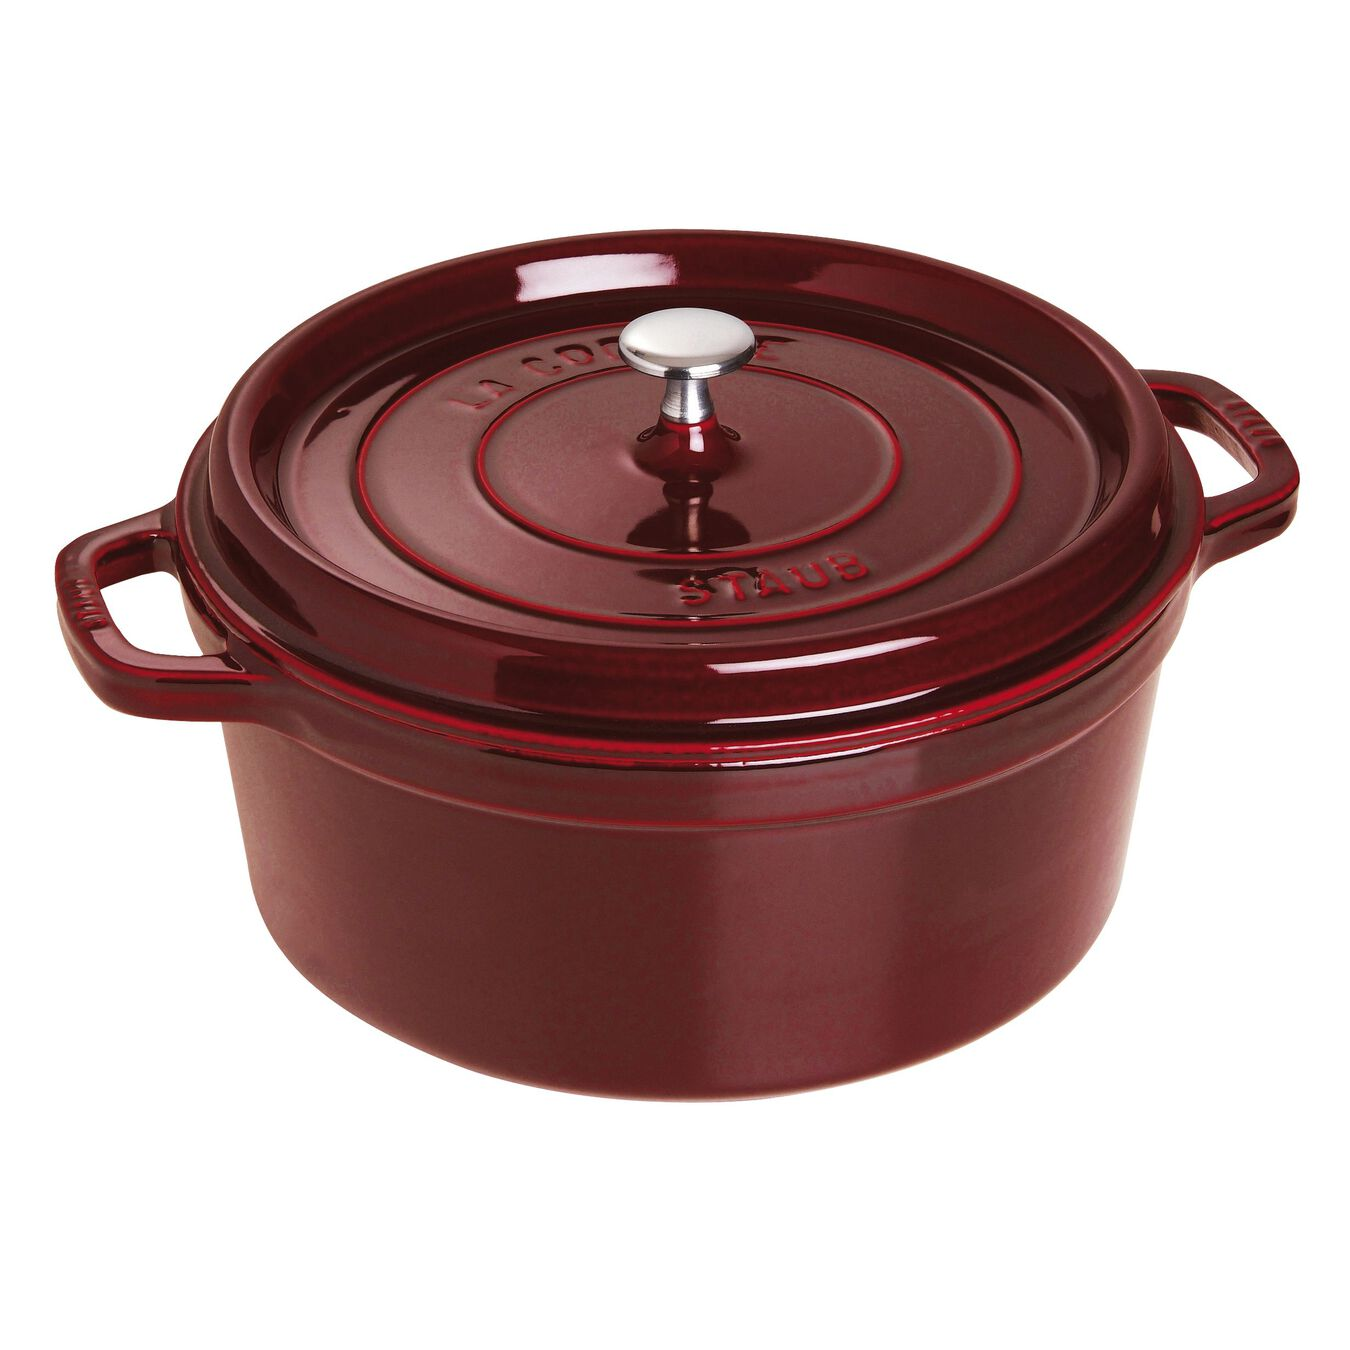 6,75 l Cast iron round Poêle à frire en fonte, Grenadine-Red,,large 1